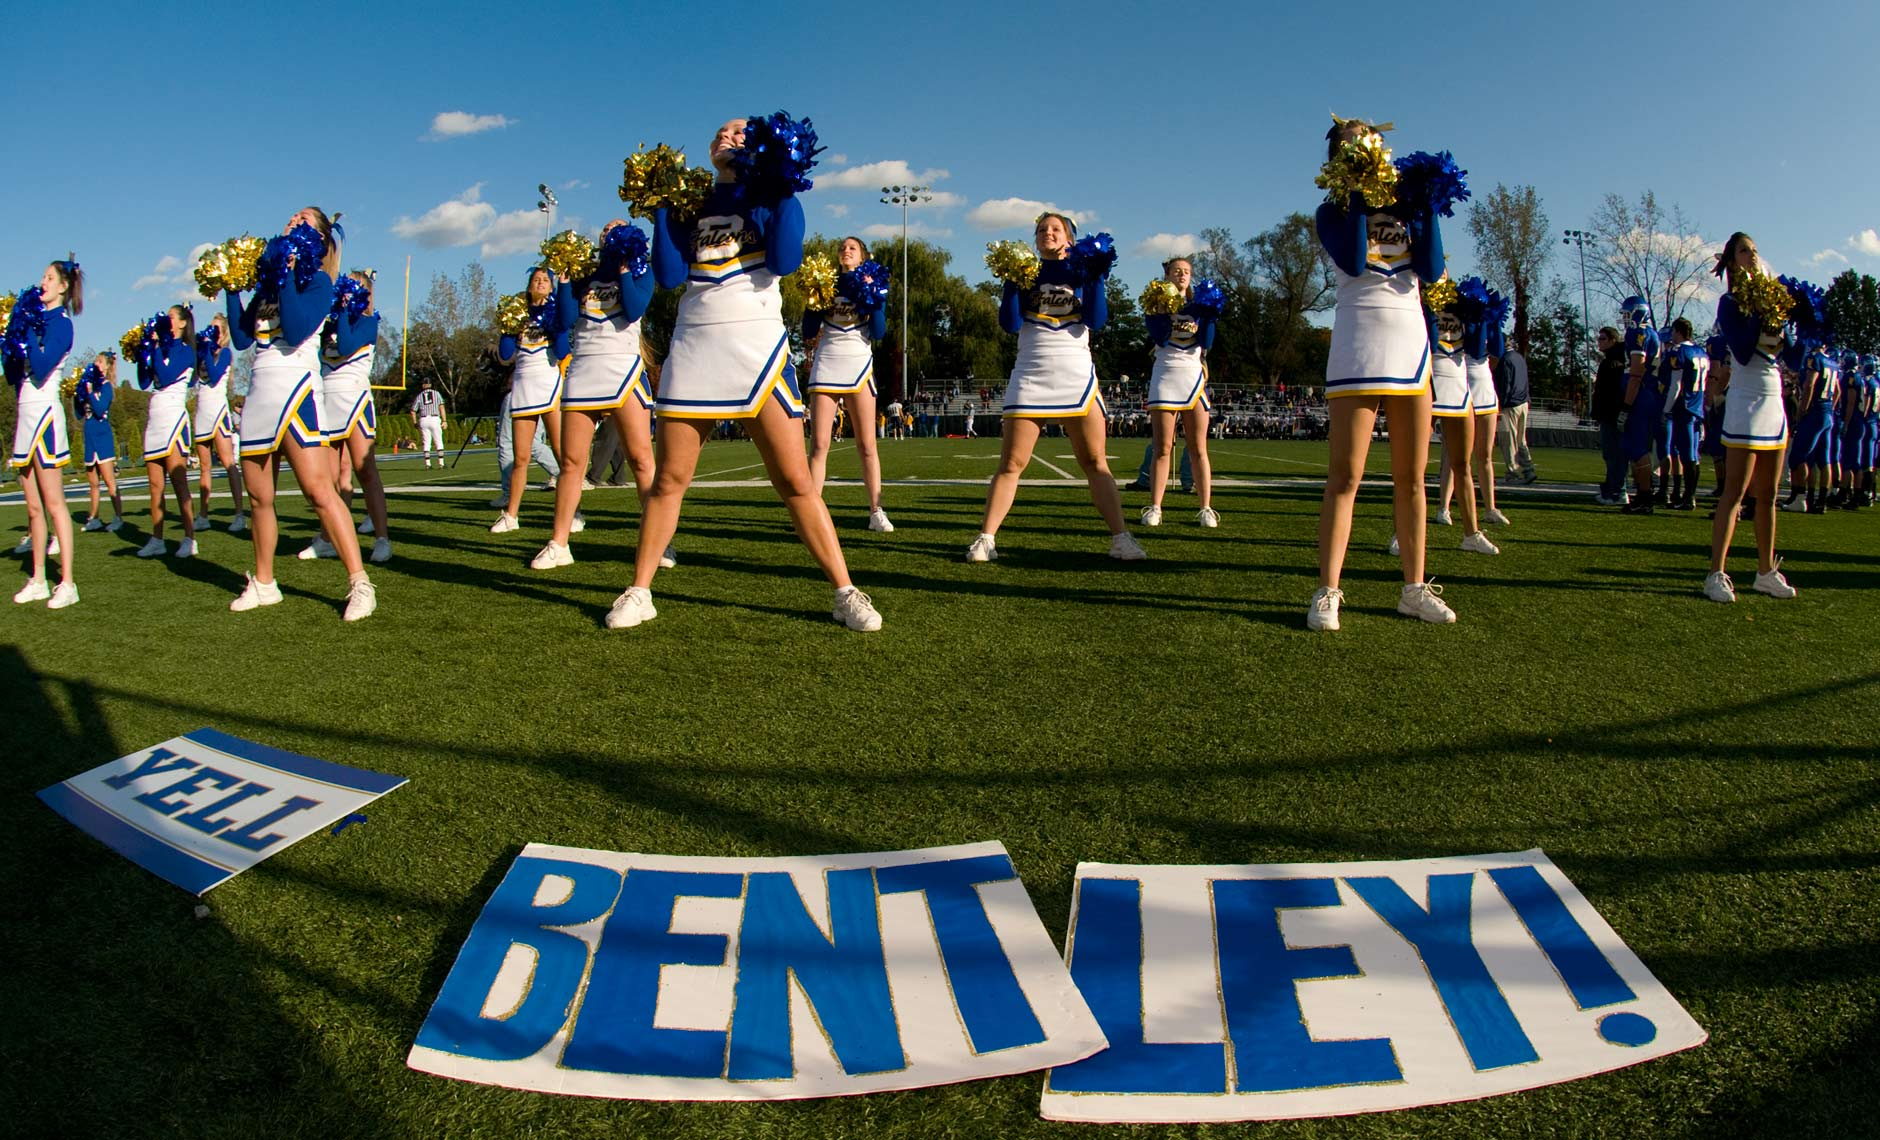 Wide angle photograph of cheerleaders at football game